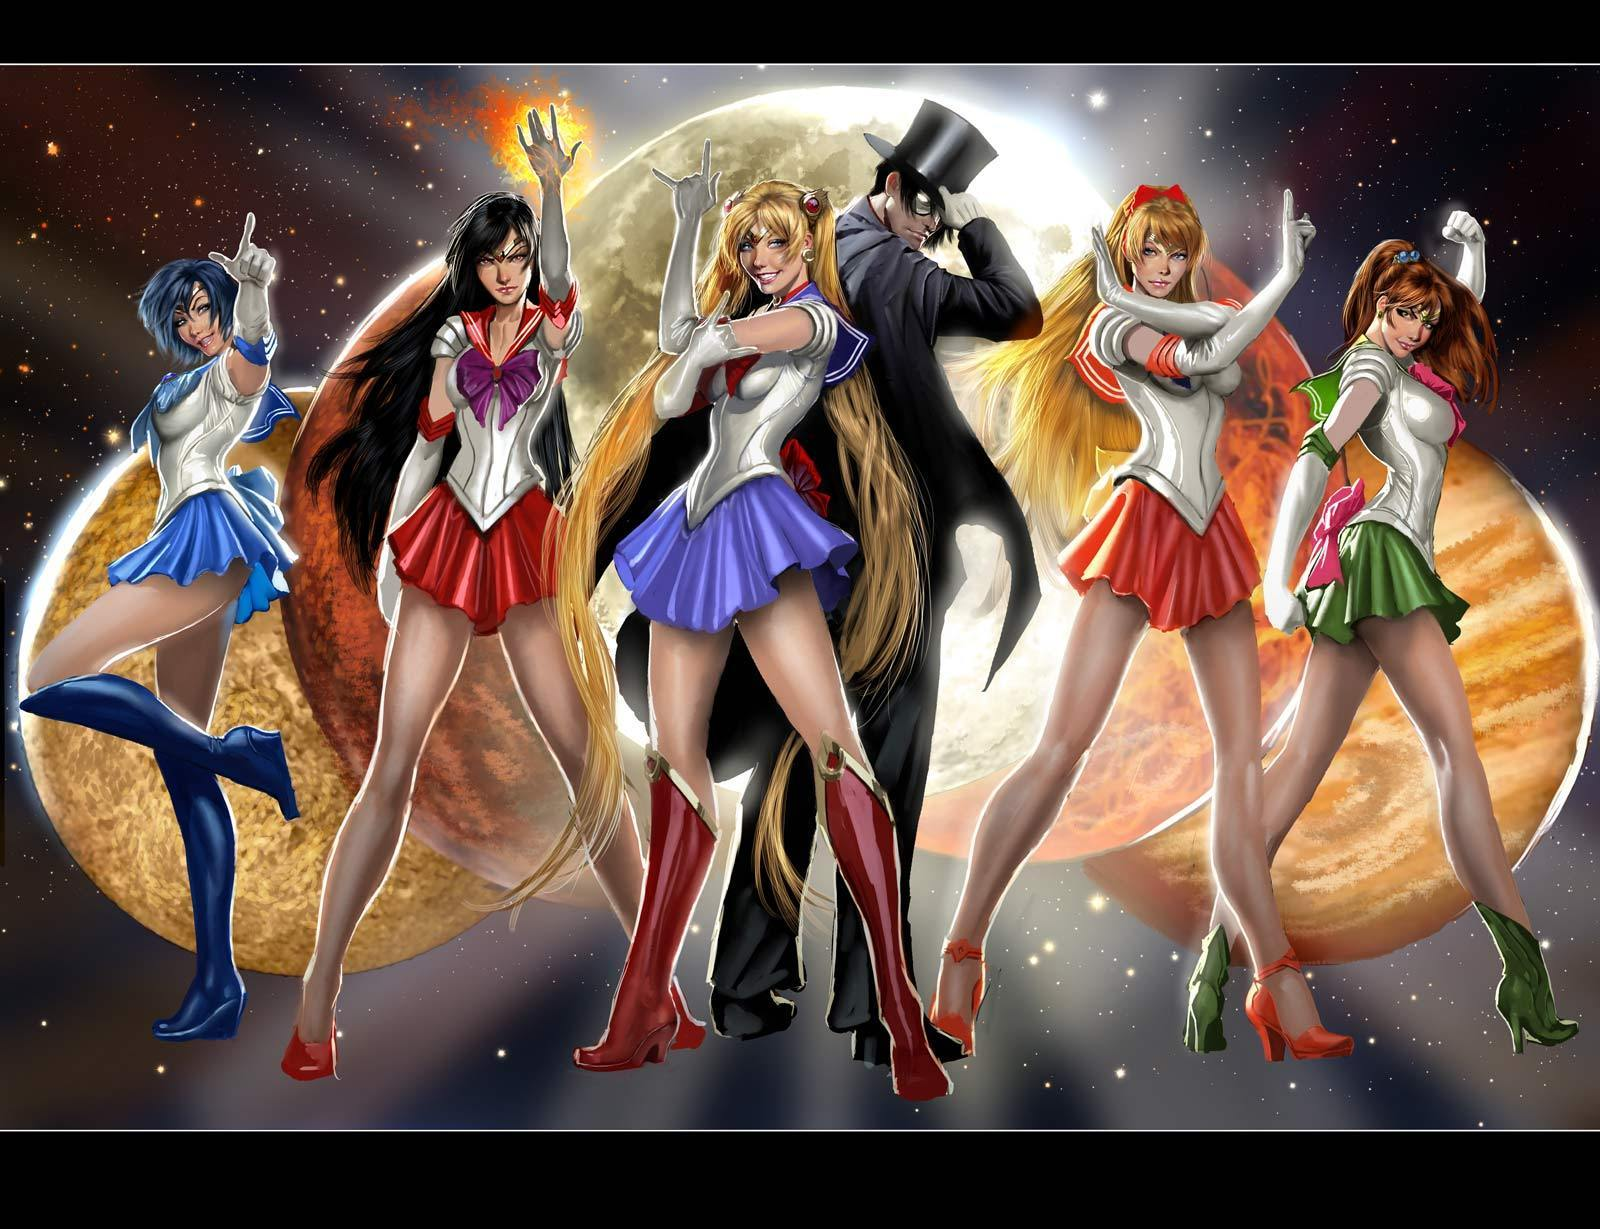 Sailor moon sailor scouts sex